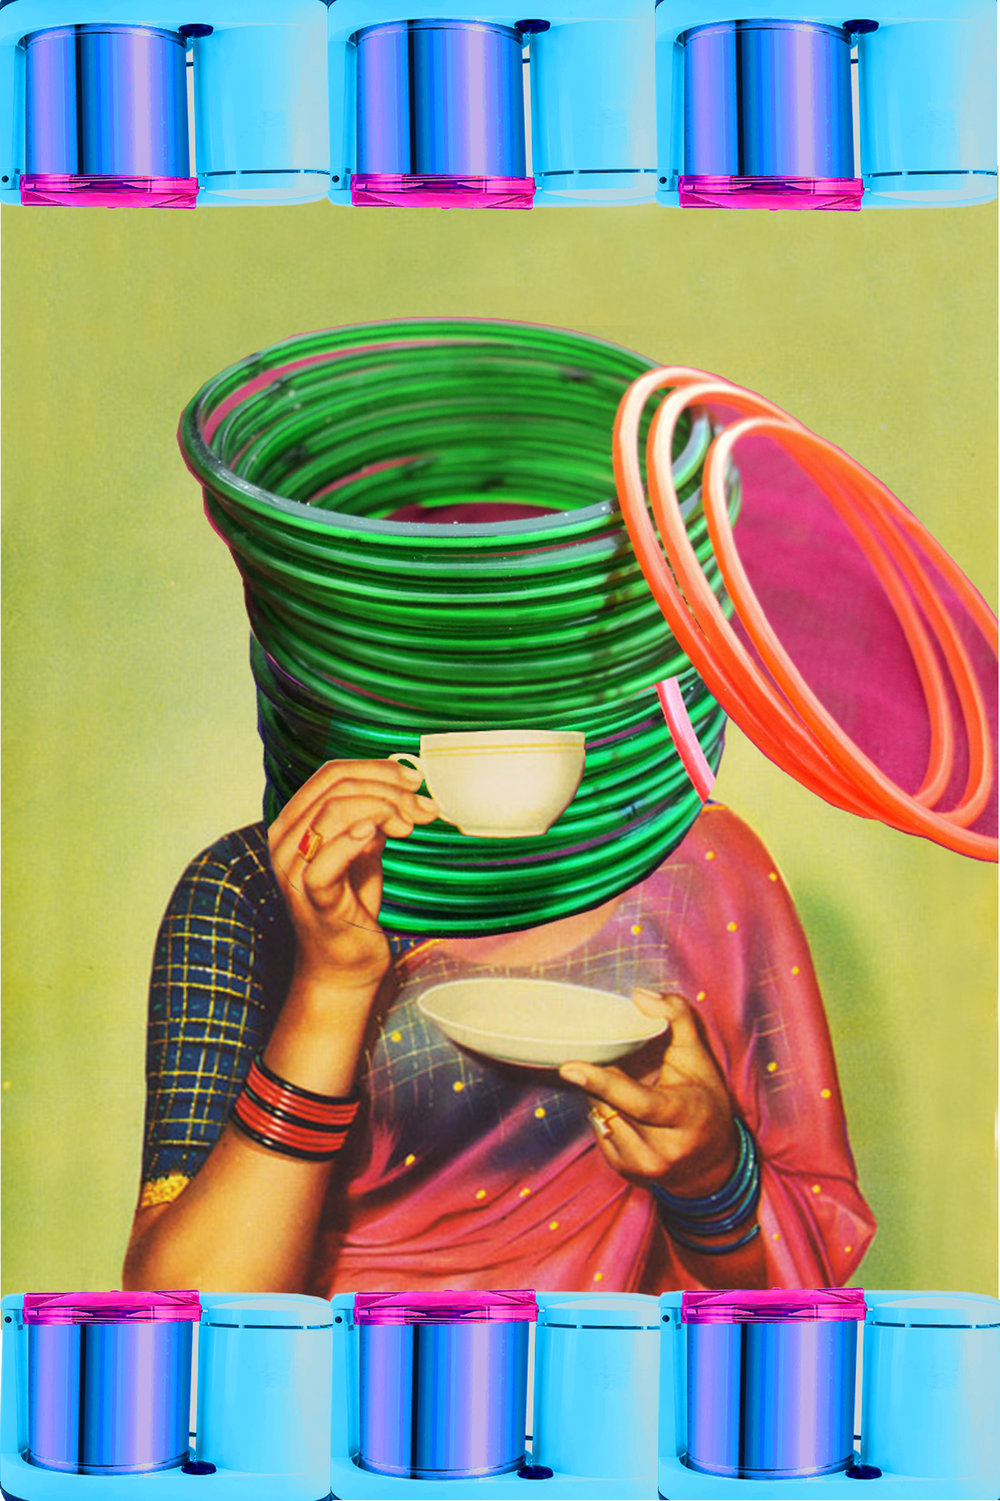 Tea Time  (2017)                                                                                                                                                                                                                   Digital collage